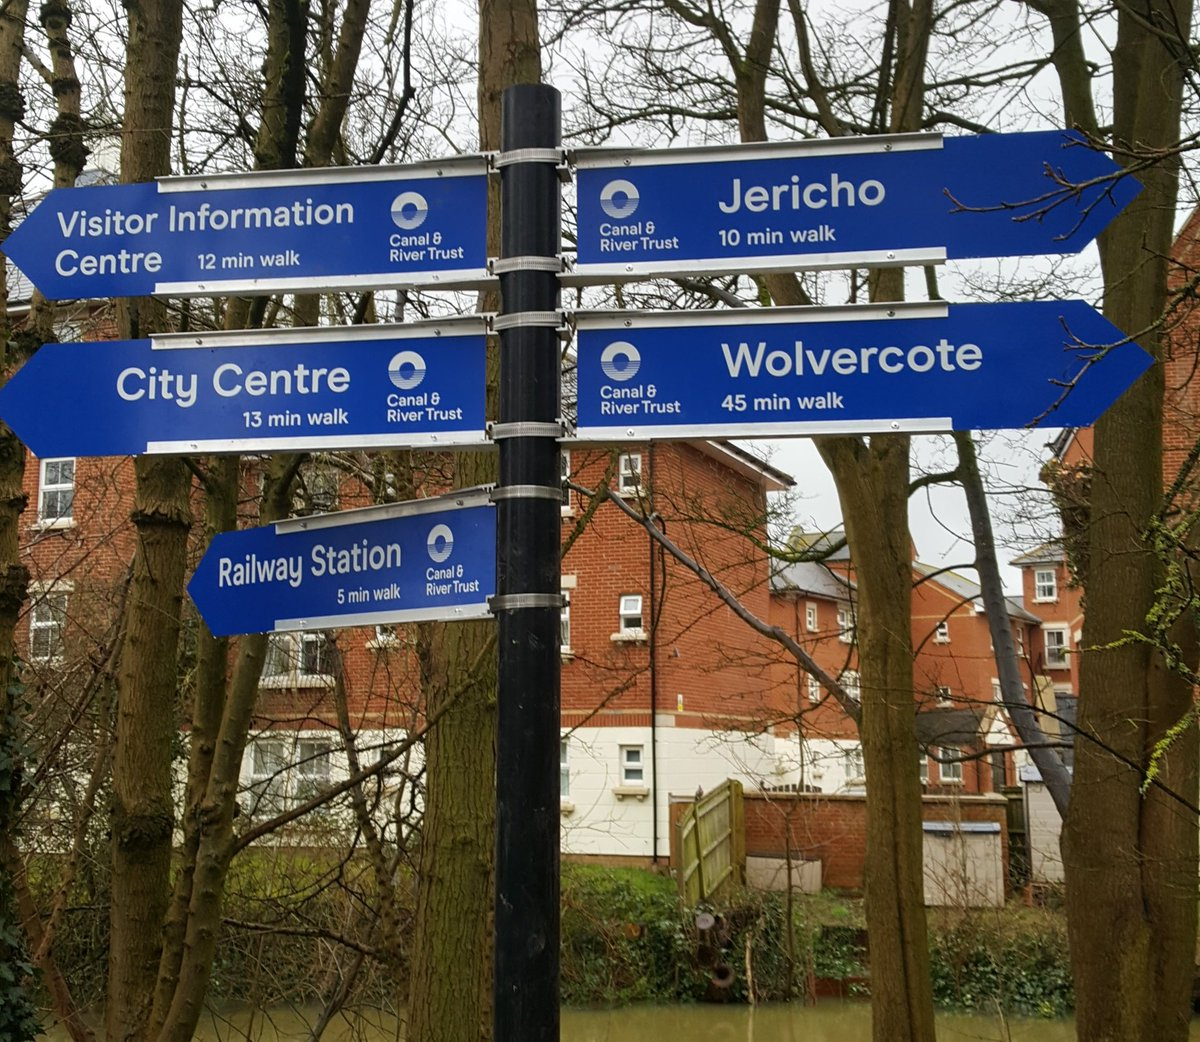 RT @Oxford_waters: New signage installed on Oxford Canal. Clear, legible and gives distances in minutes for walking.  Promoting use for health, wellbeing and active travel. @PHE_SouthEast @OxfordshireCC @OxfordCity @CRTSouthEast @OxTweets @activeoxon @GAOxfordshire